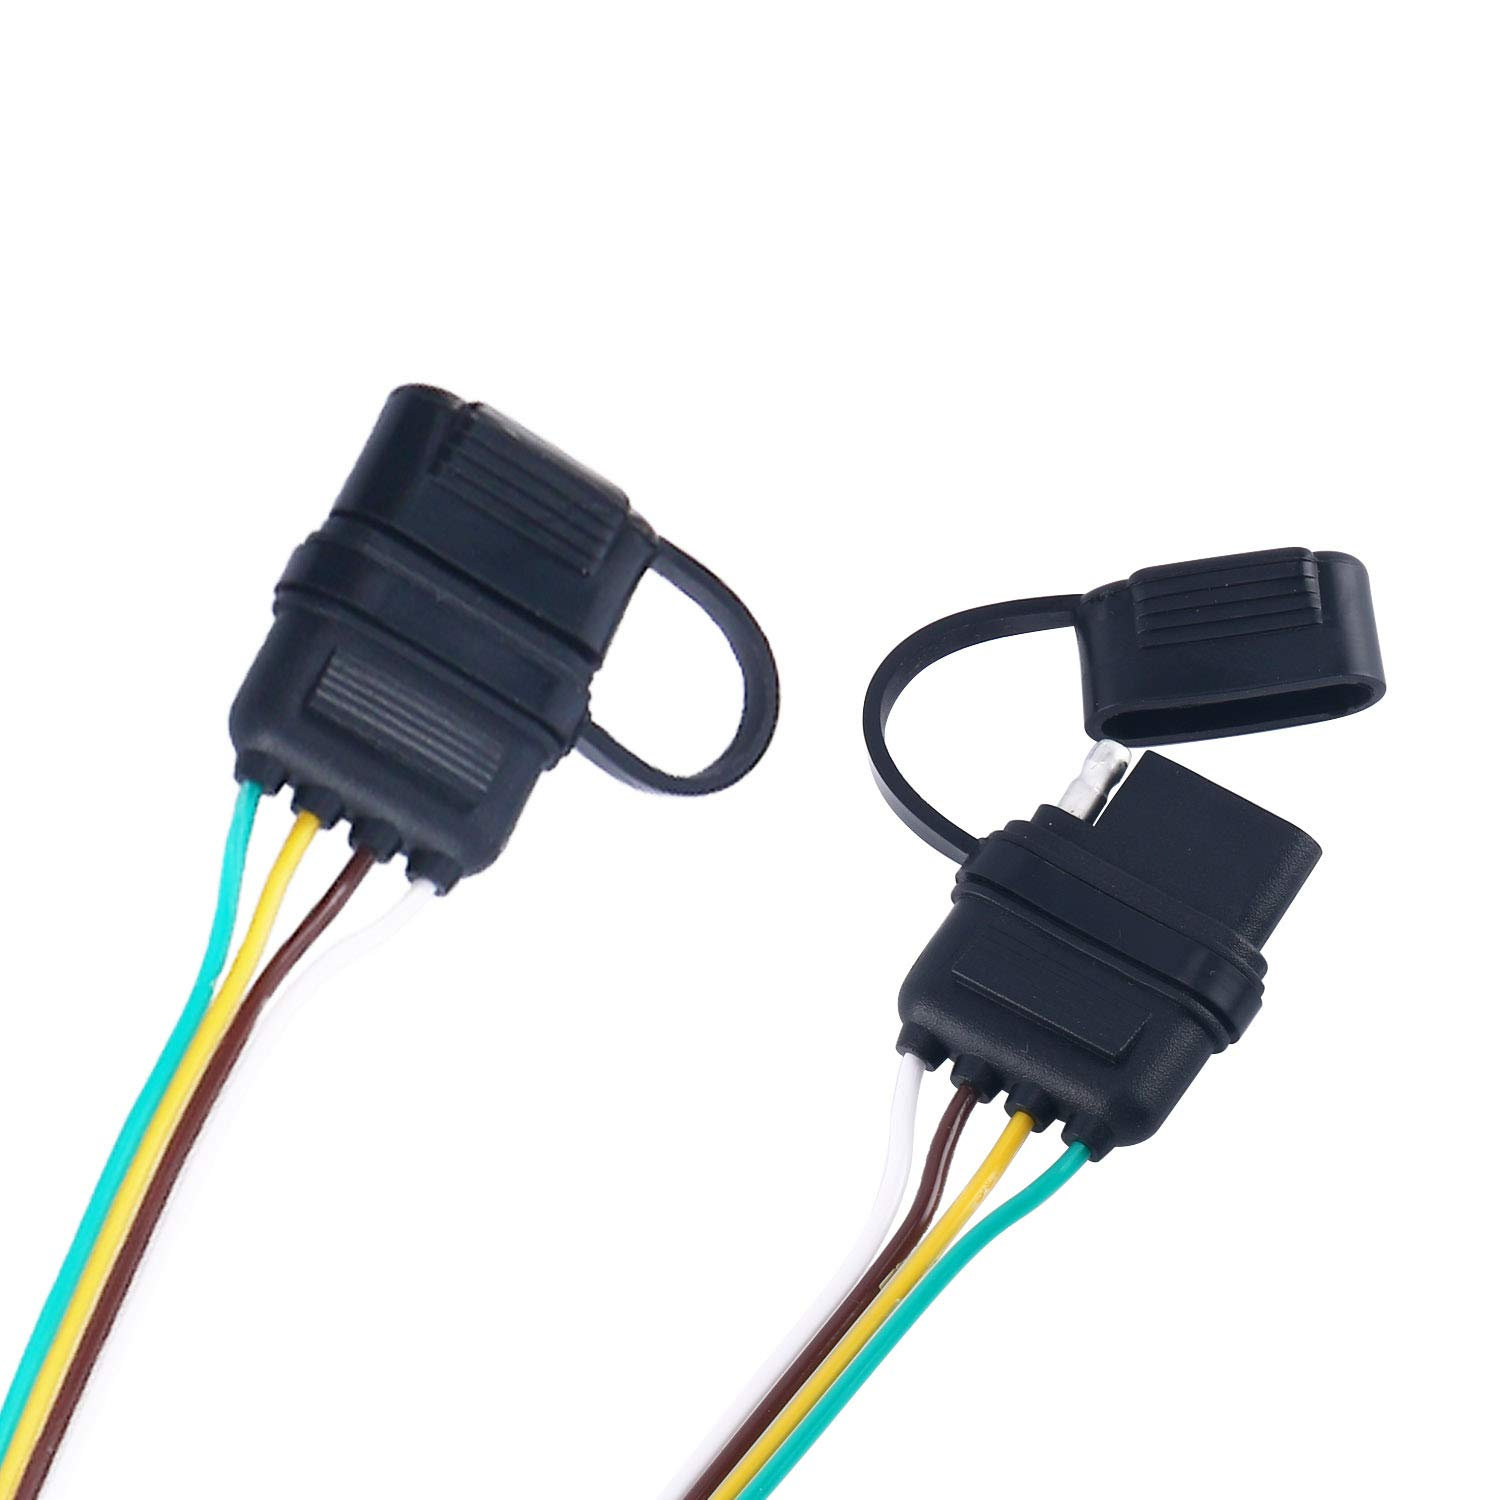 Yaekoo 4 Way Y Splitter Flat Trailer Wire Harness Extension Wiring Adapter Connector Plug For Led